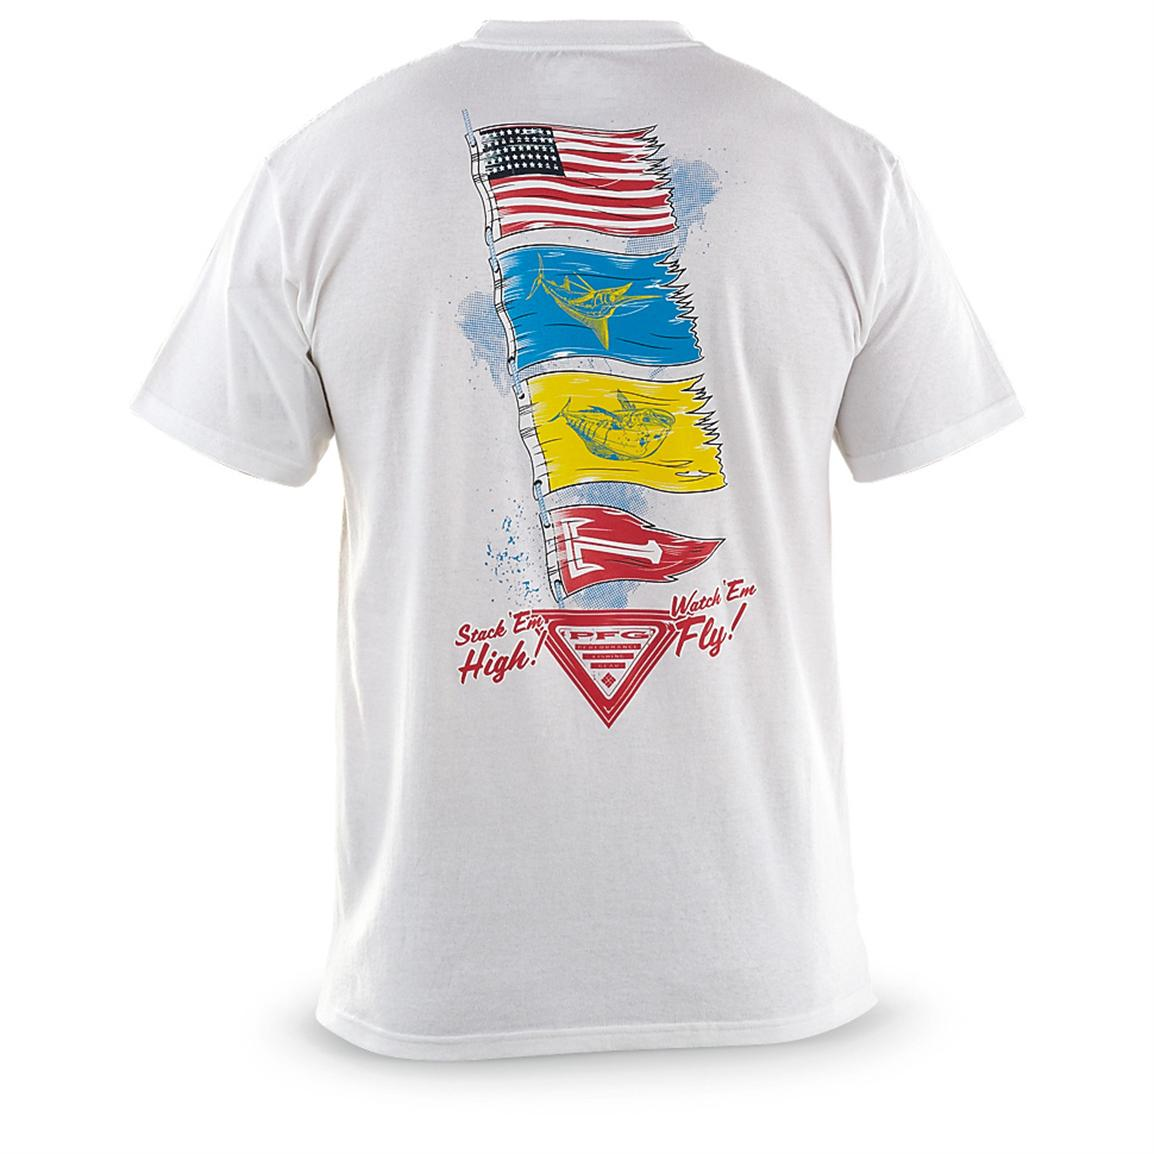 Men's Columbia PFG Americana Paddling Out Short-sleeved T-shirt, White - Back view